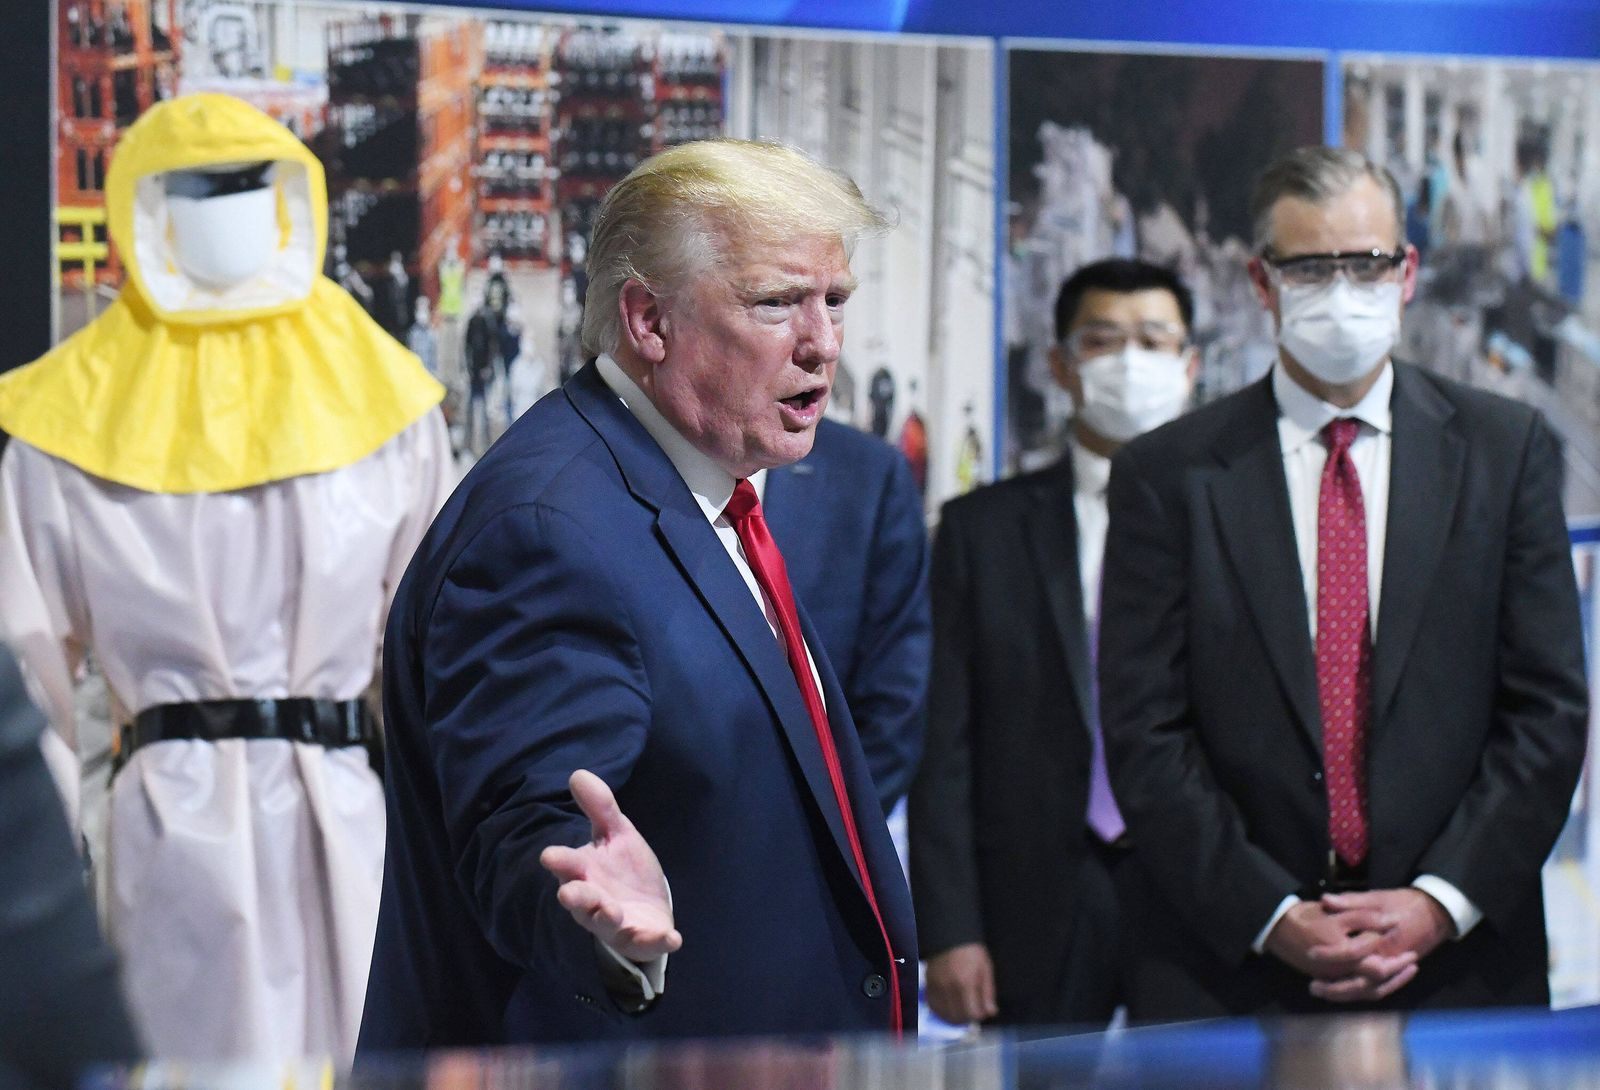 May 21, 2020, Ypsilanti, Michigan, USA: President DONALD TRUMP speaks during a visit to Ford Motor Co. s Rawsonfille Co